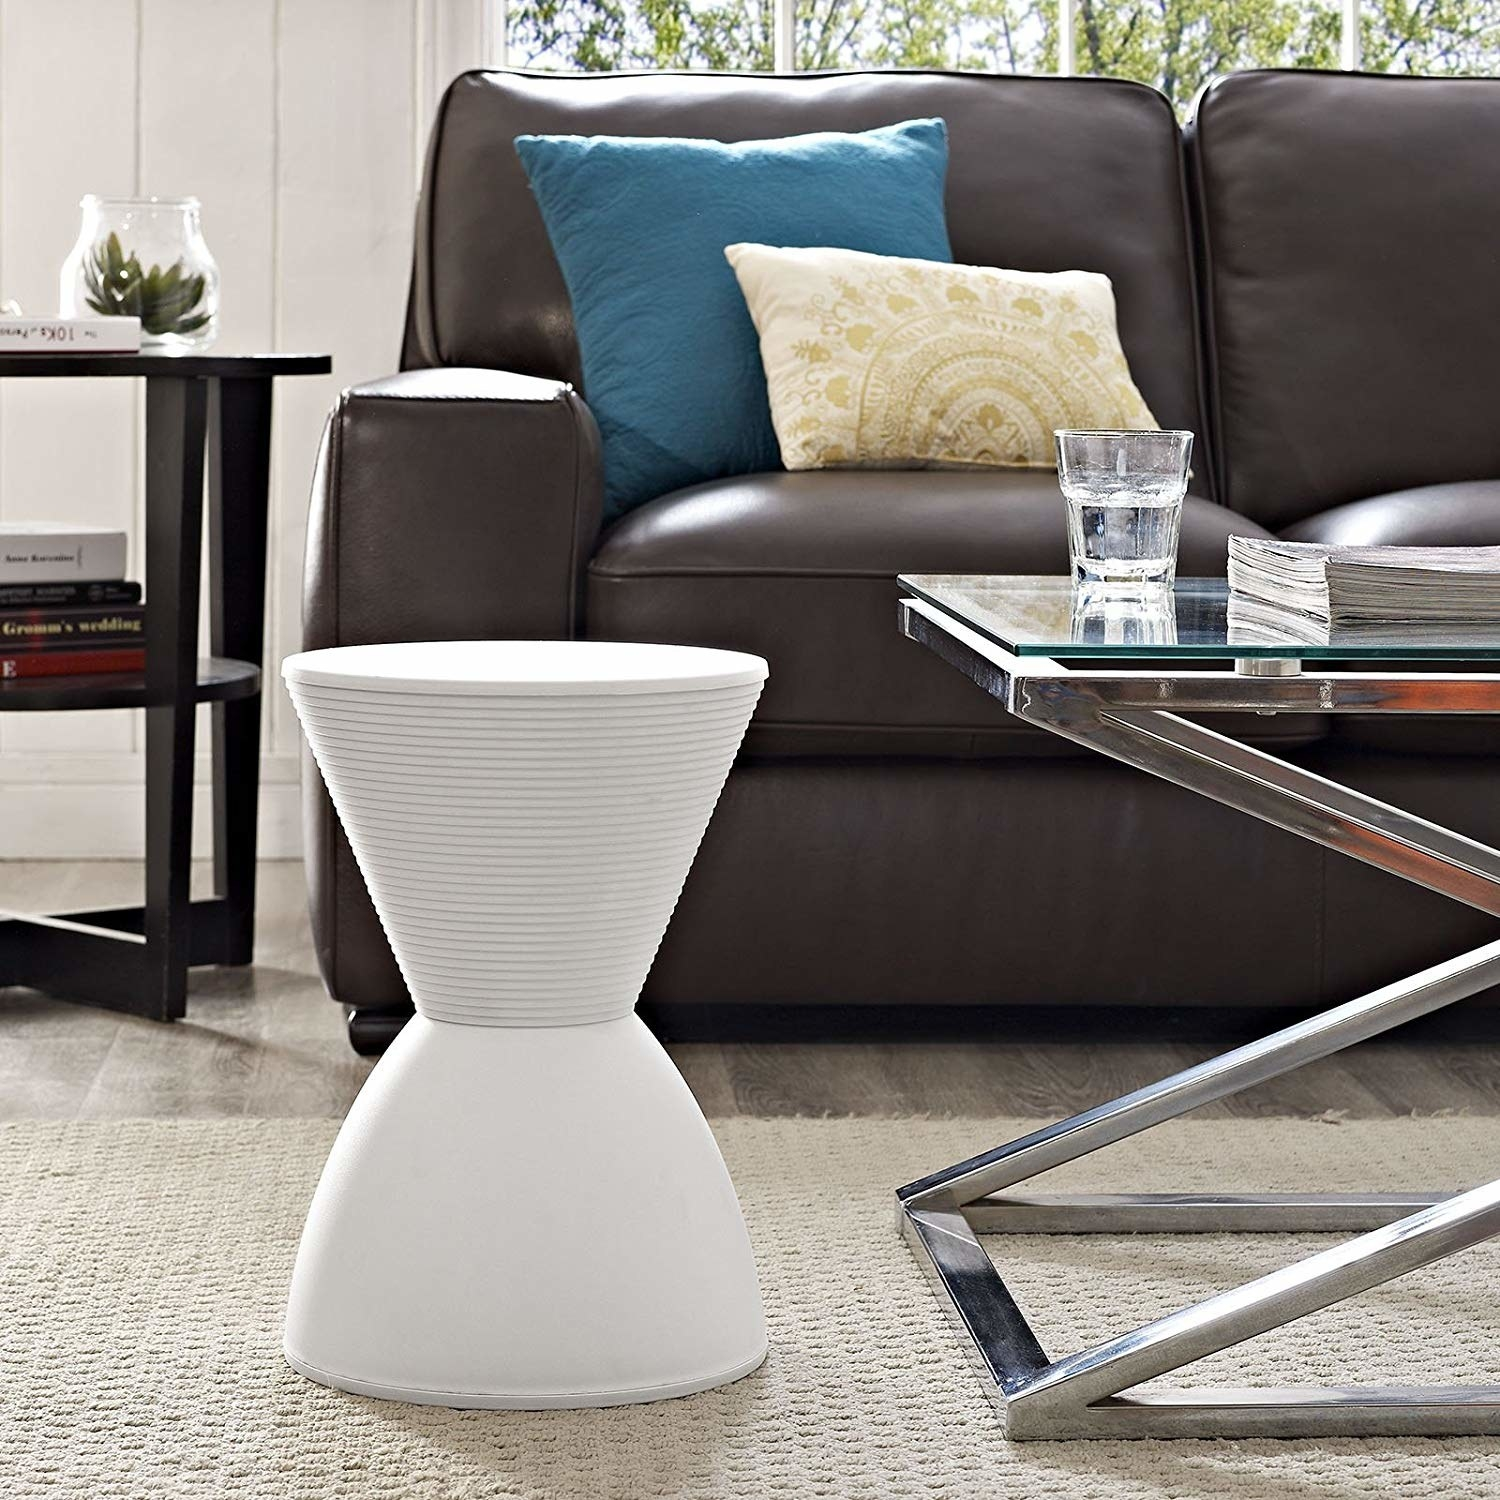 The hourglass-shaped stool in white